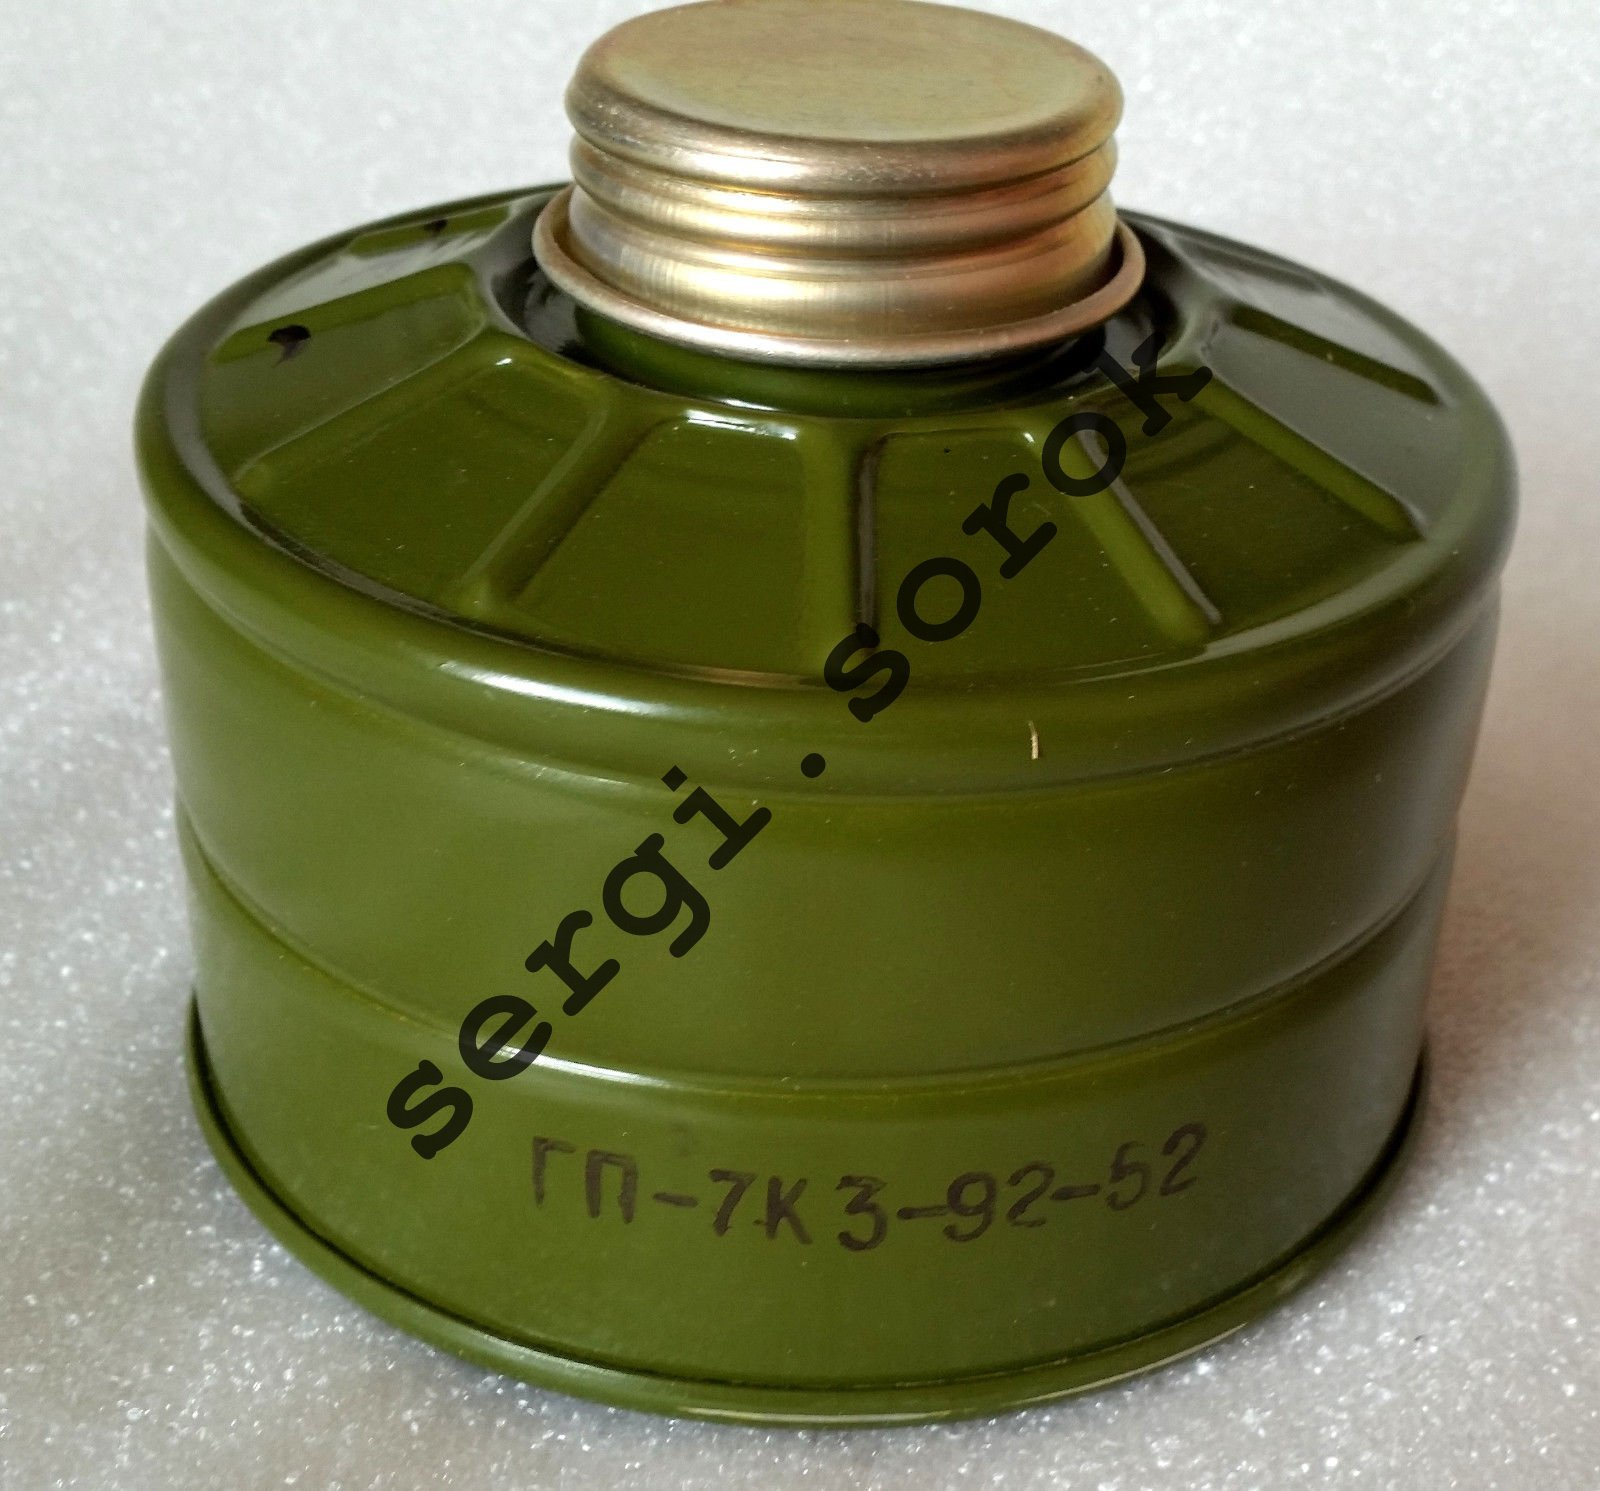 NBC Full Face Russian Army Military Gas Mask MAG CBRN MSA SGE panoramic 2019 new image 4